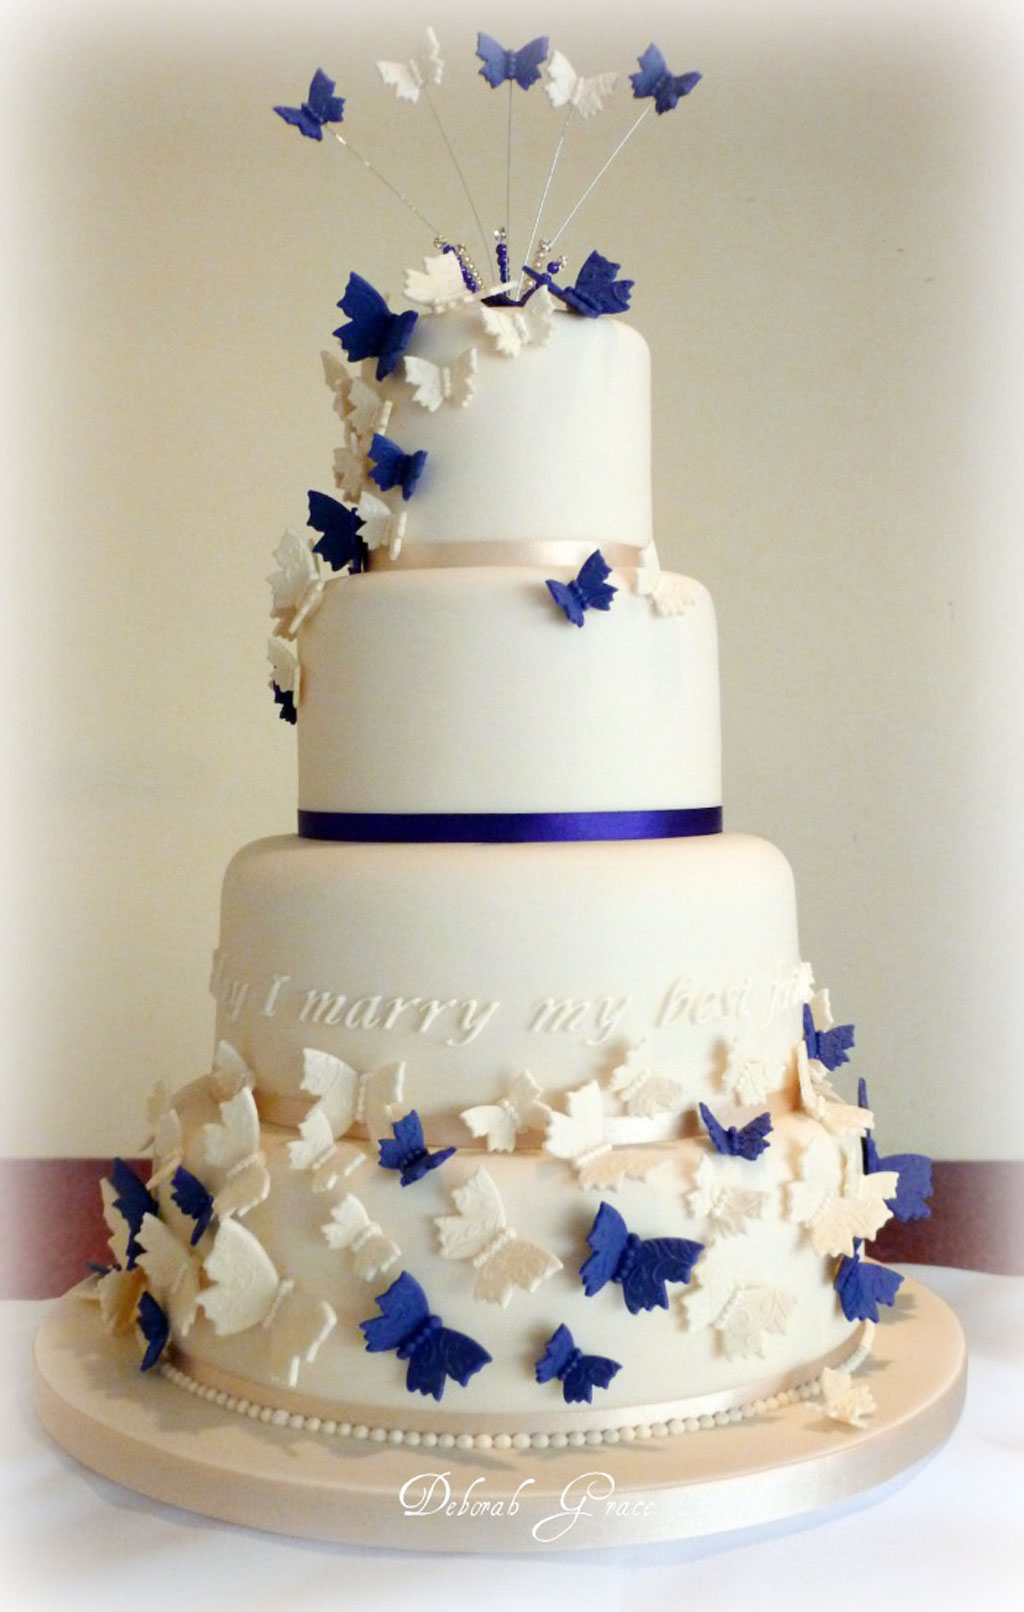 Cake Design And Decoration : Butterfly Wedding Cakes Decoration Wedding Cake - Cake ...